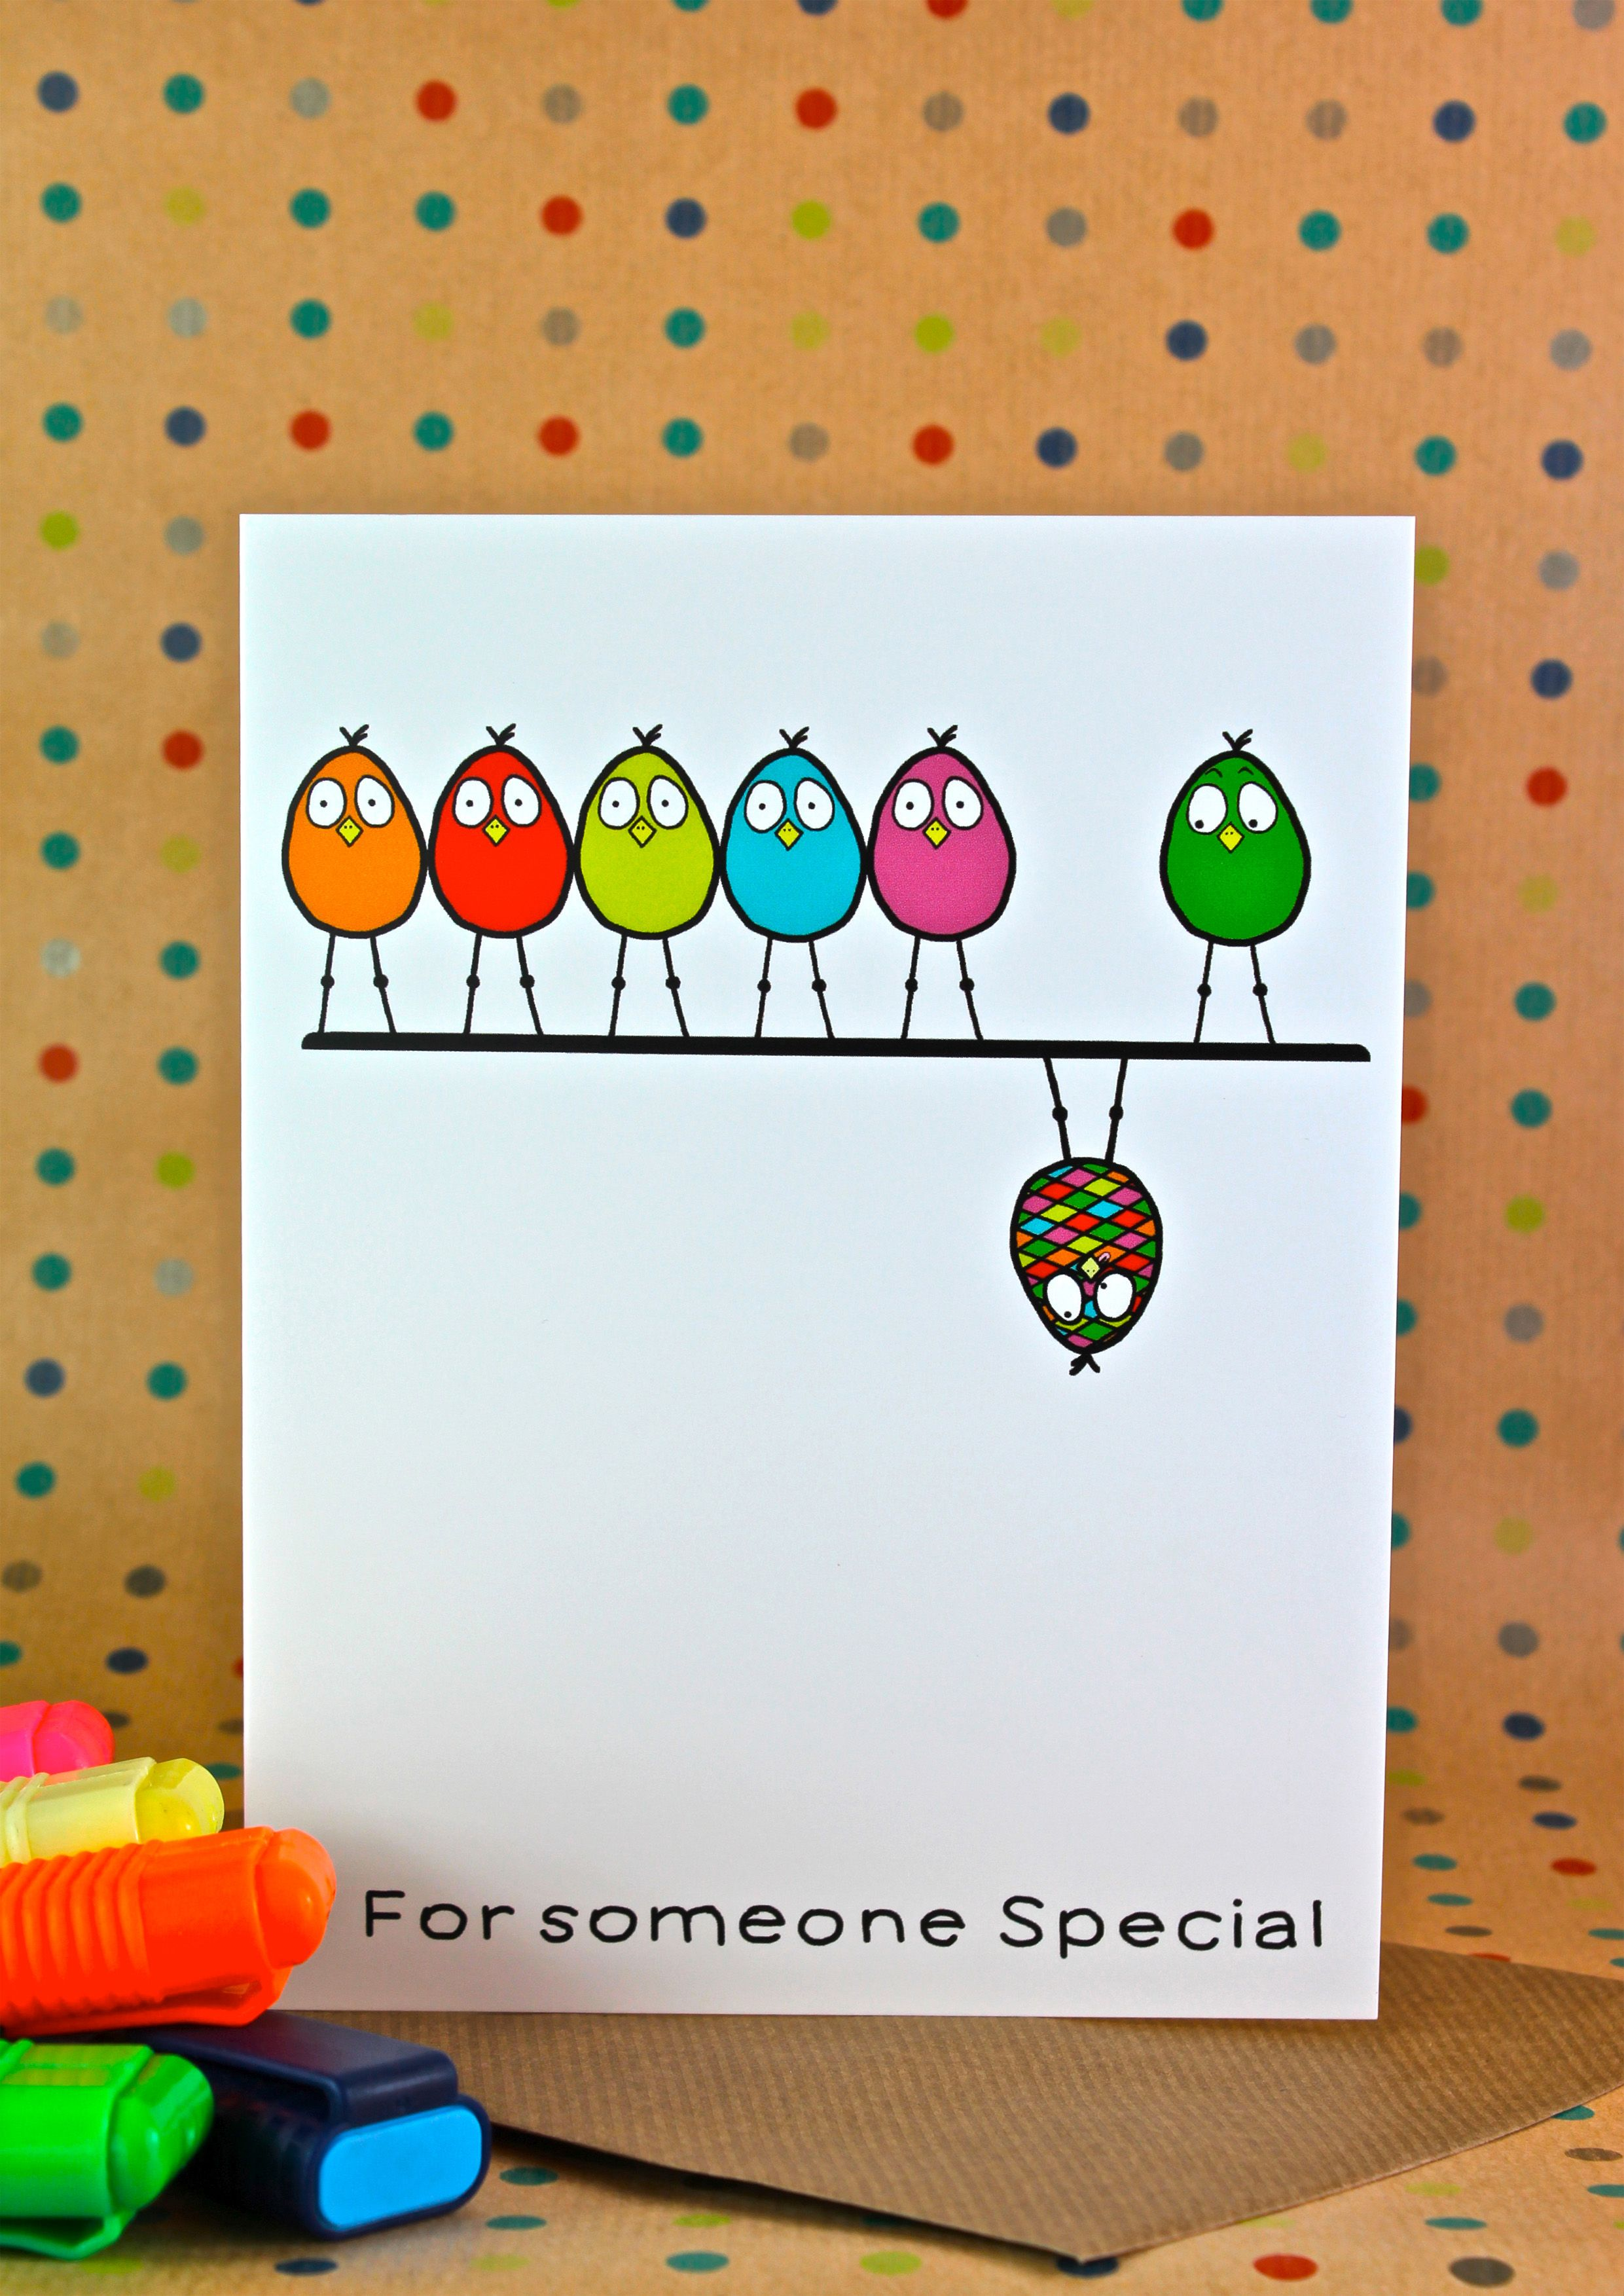 Astounding Someone Special Greeting Card A Funny And Humorous Hand Drawn Funny Birthday Cards Online Barepcheapnameinfo